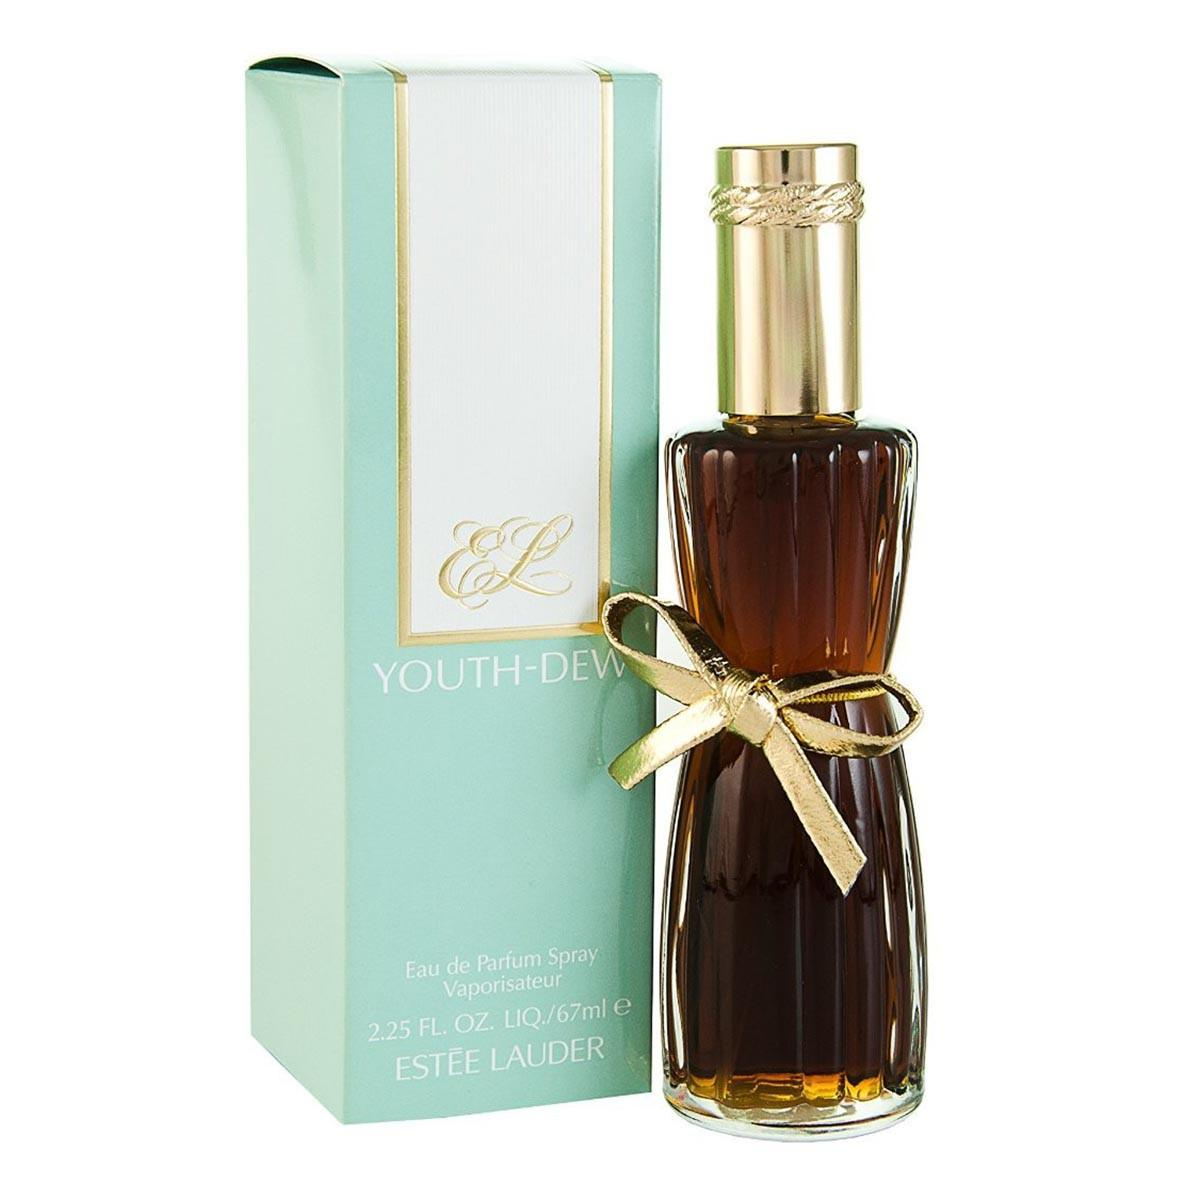 Estee lauder fragrances Youth Dew Eau De Parfum 65ml